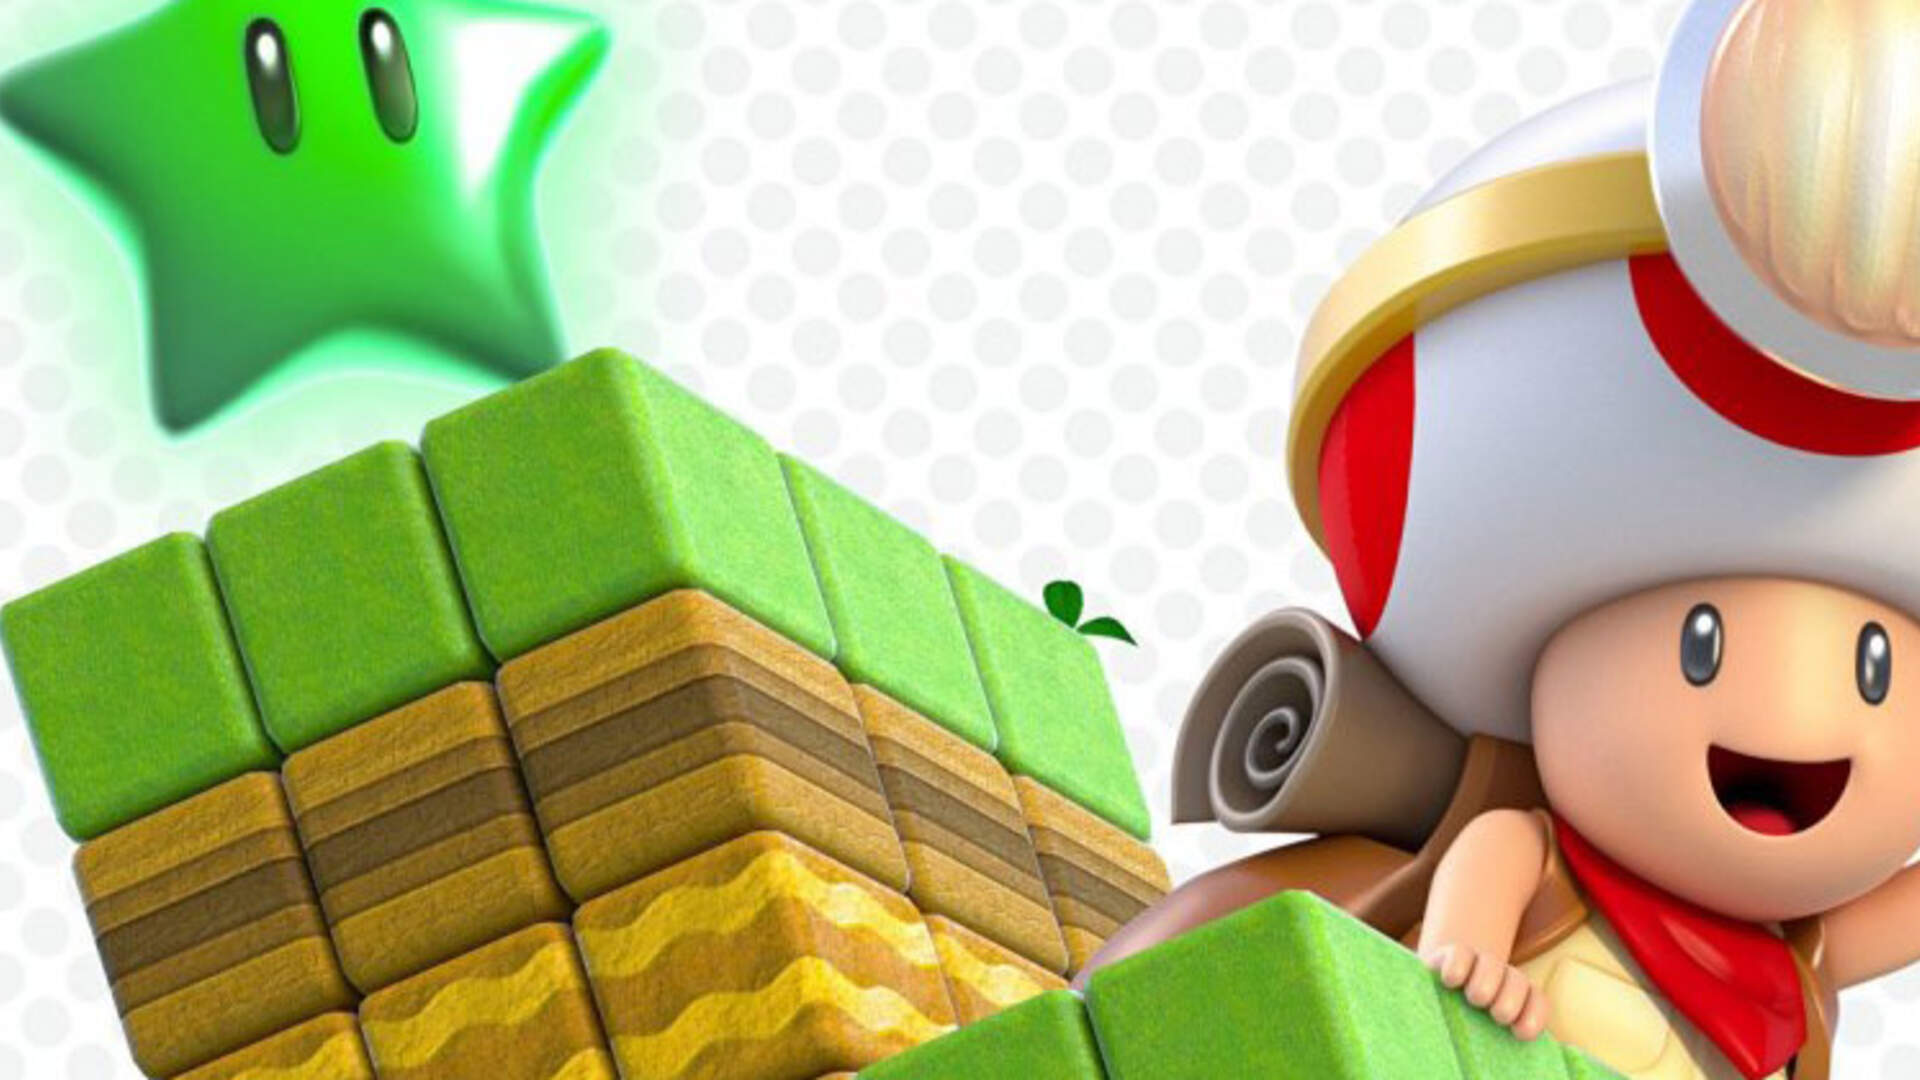 Does the World Need Another Mario Spin-off? Yes, When It Stars Captain Toad